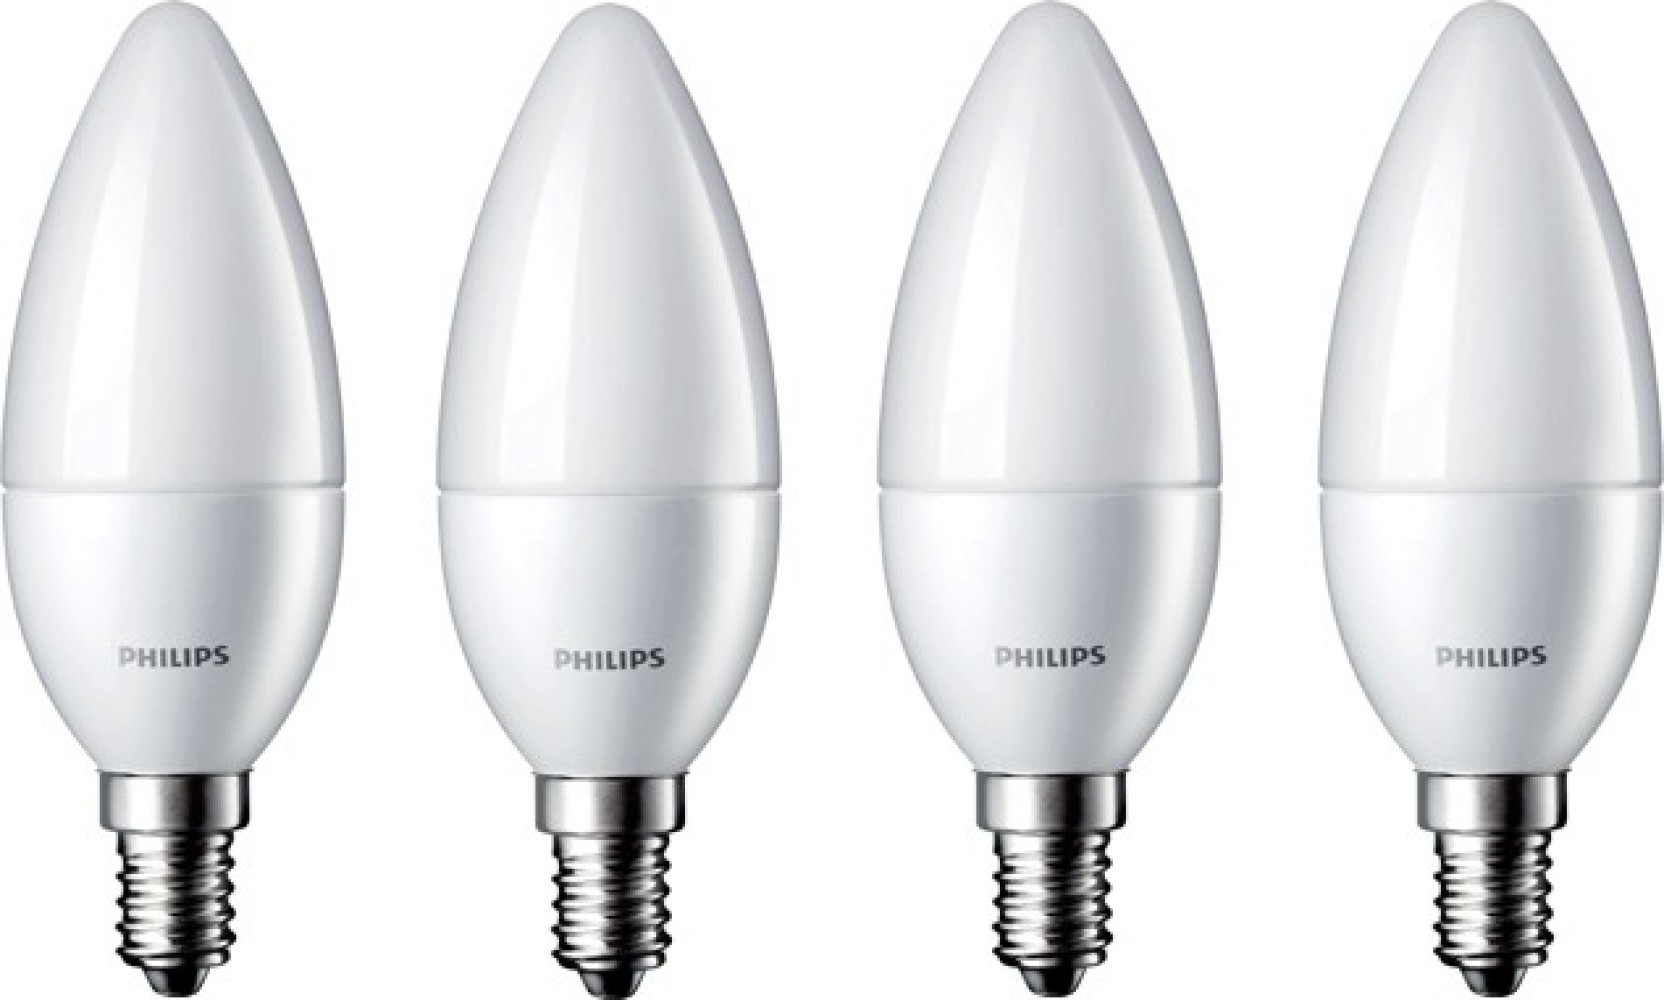 Philips 27 W Candle E14 Led Bulb Price In India Buy 3w Gen V Add To Cart